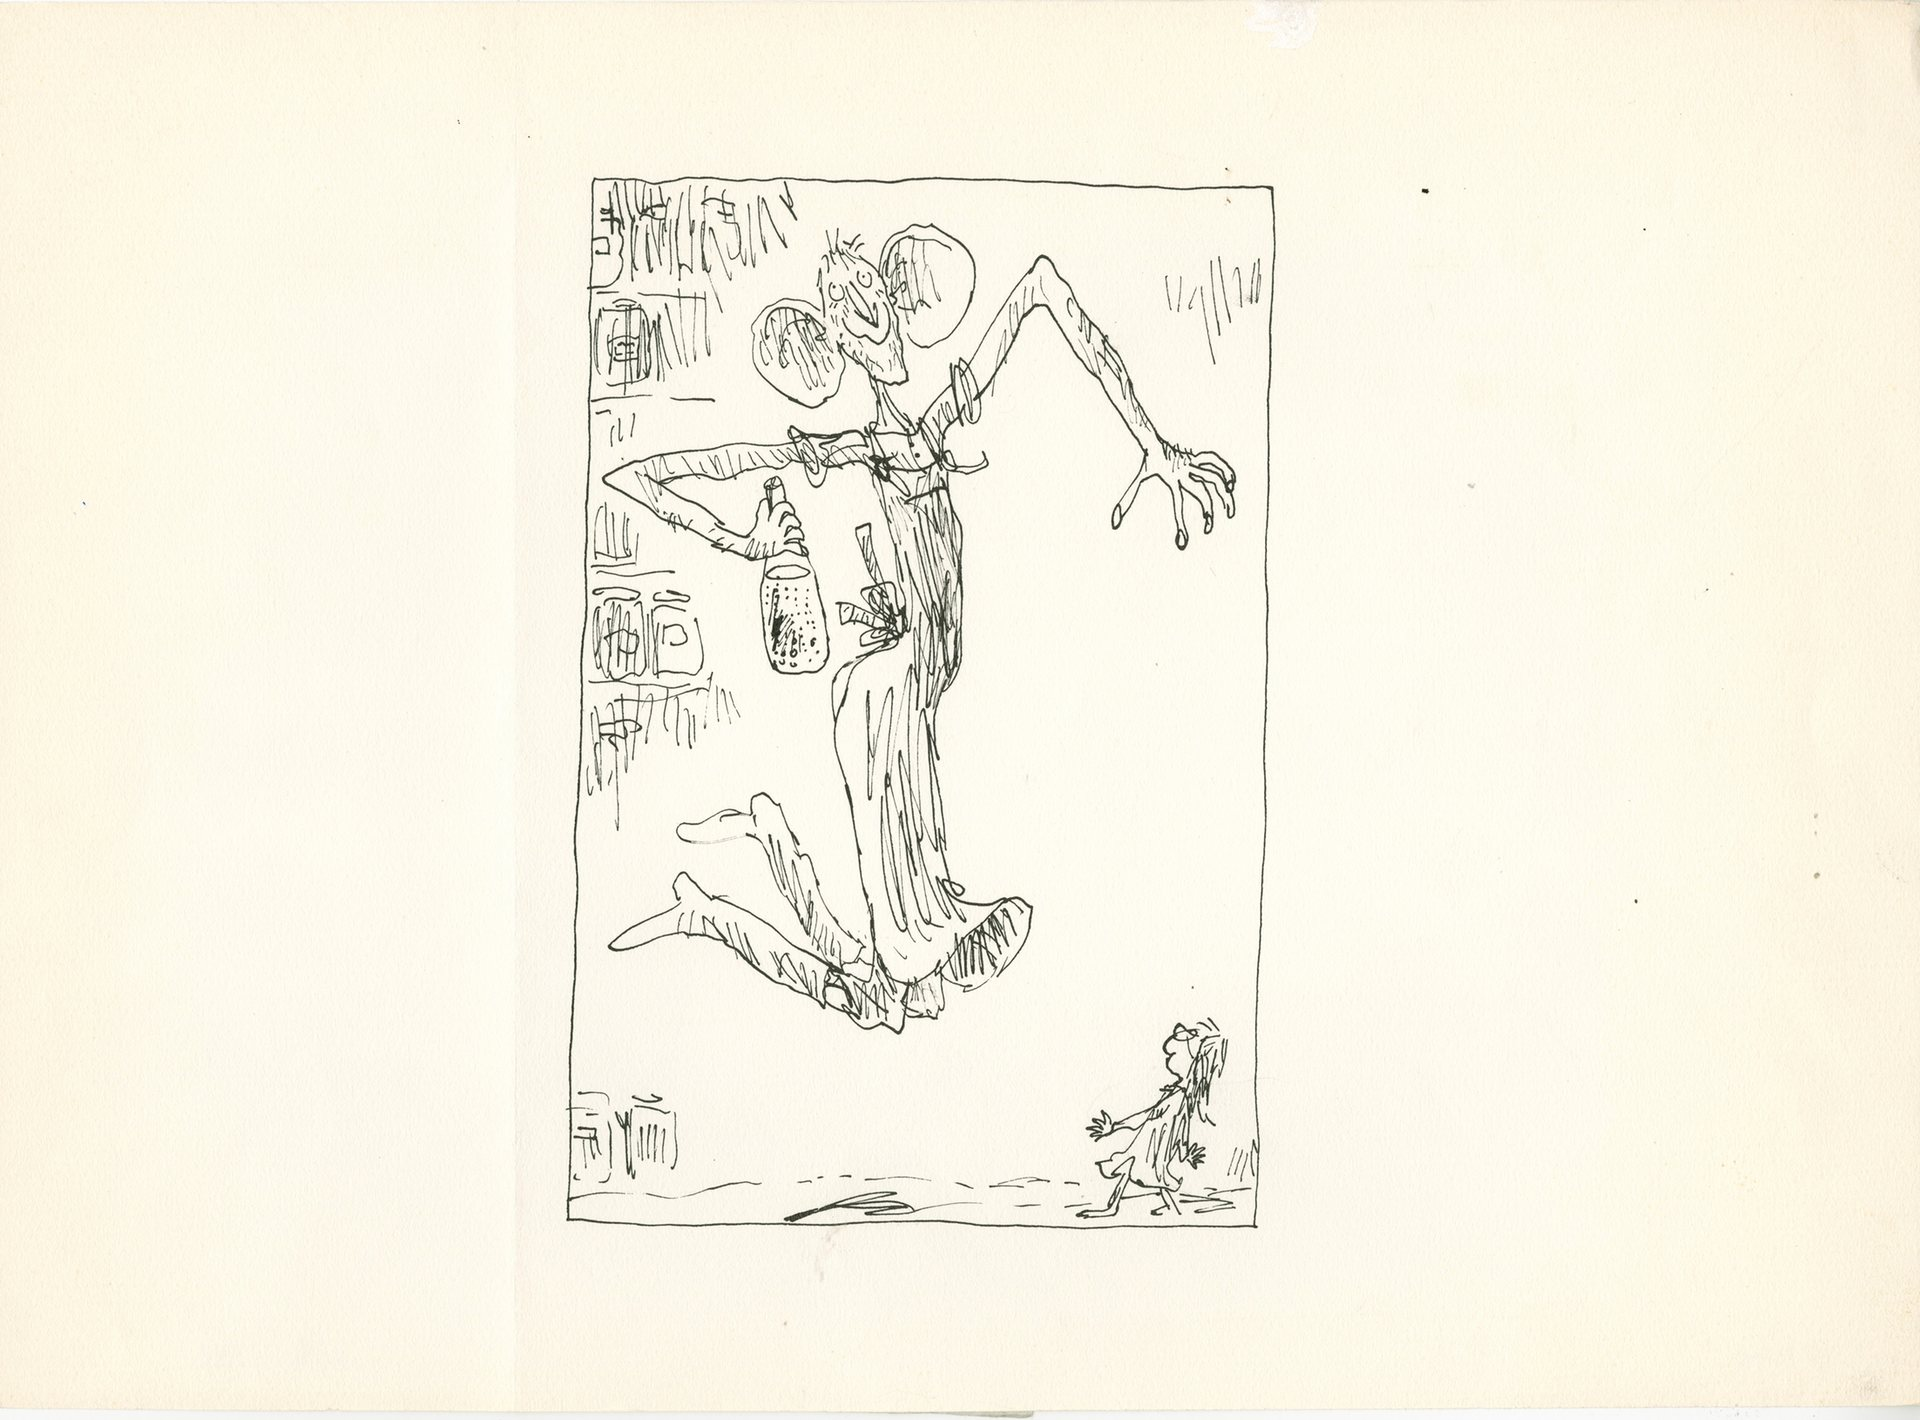 Unpublished BFG illustration by Quentin Blake